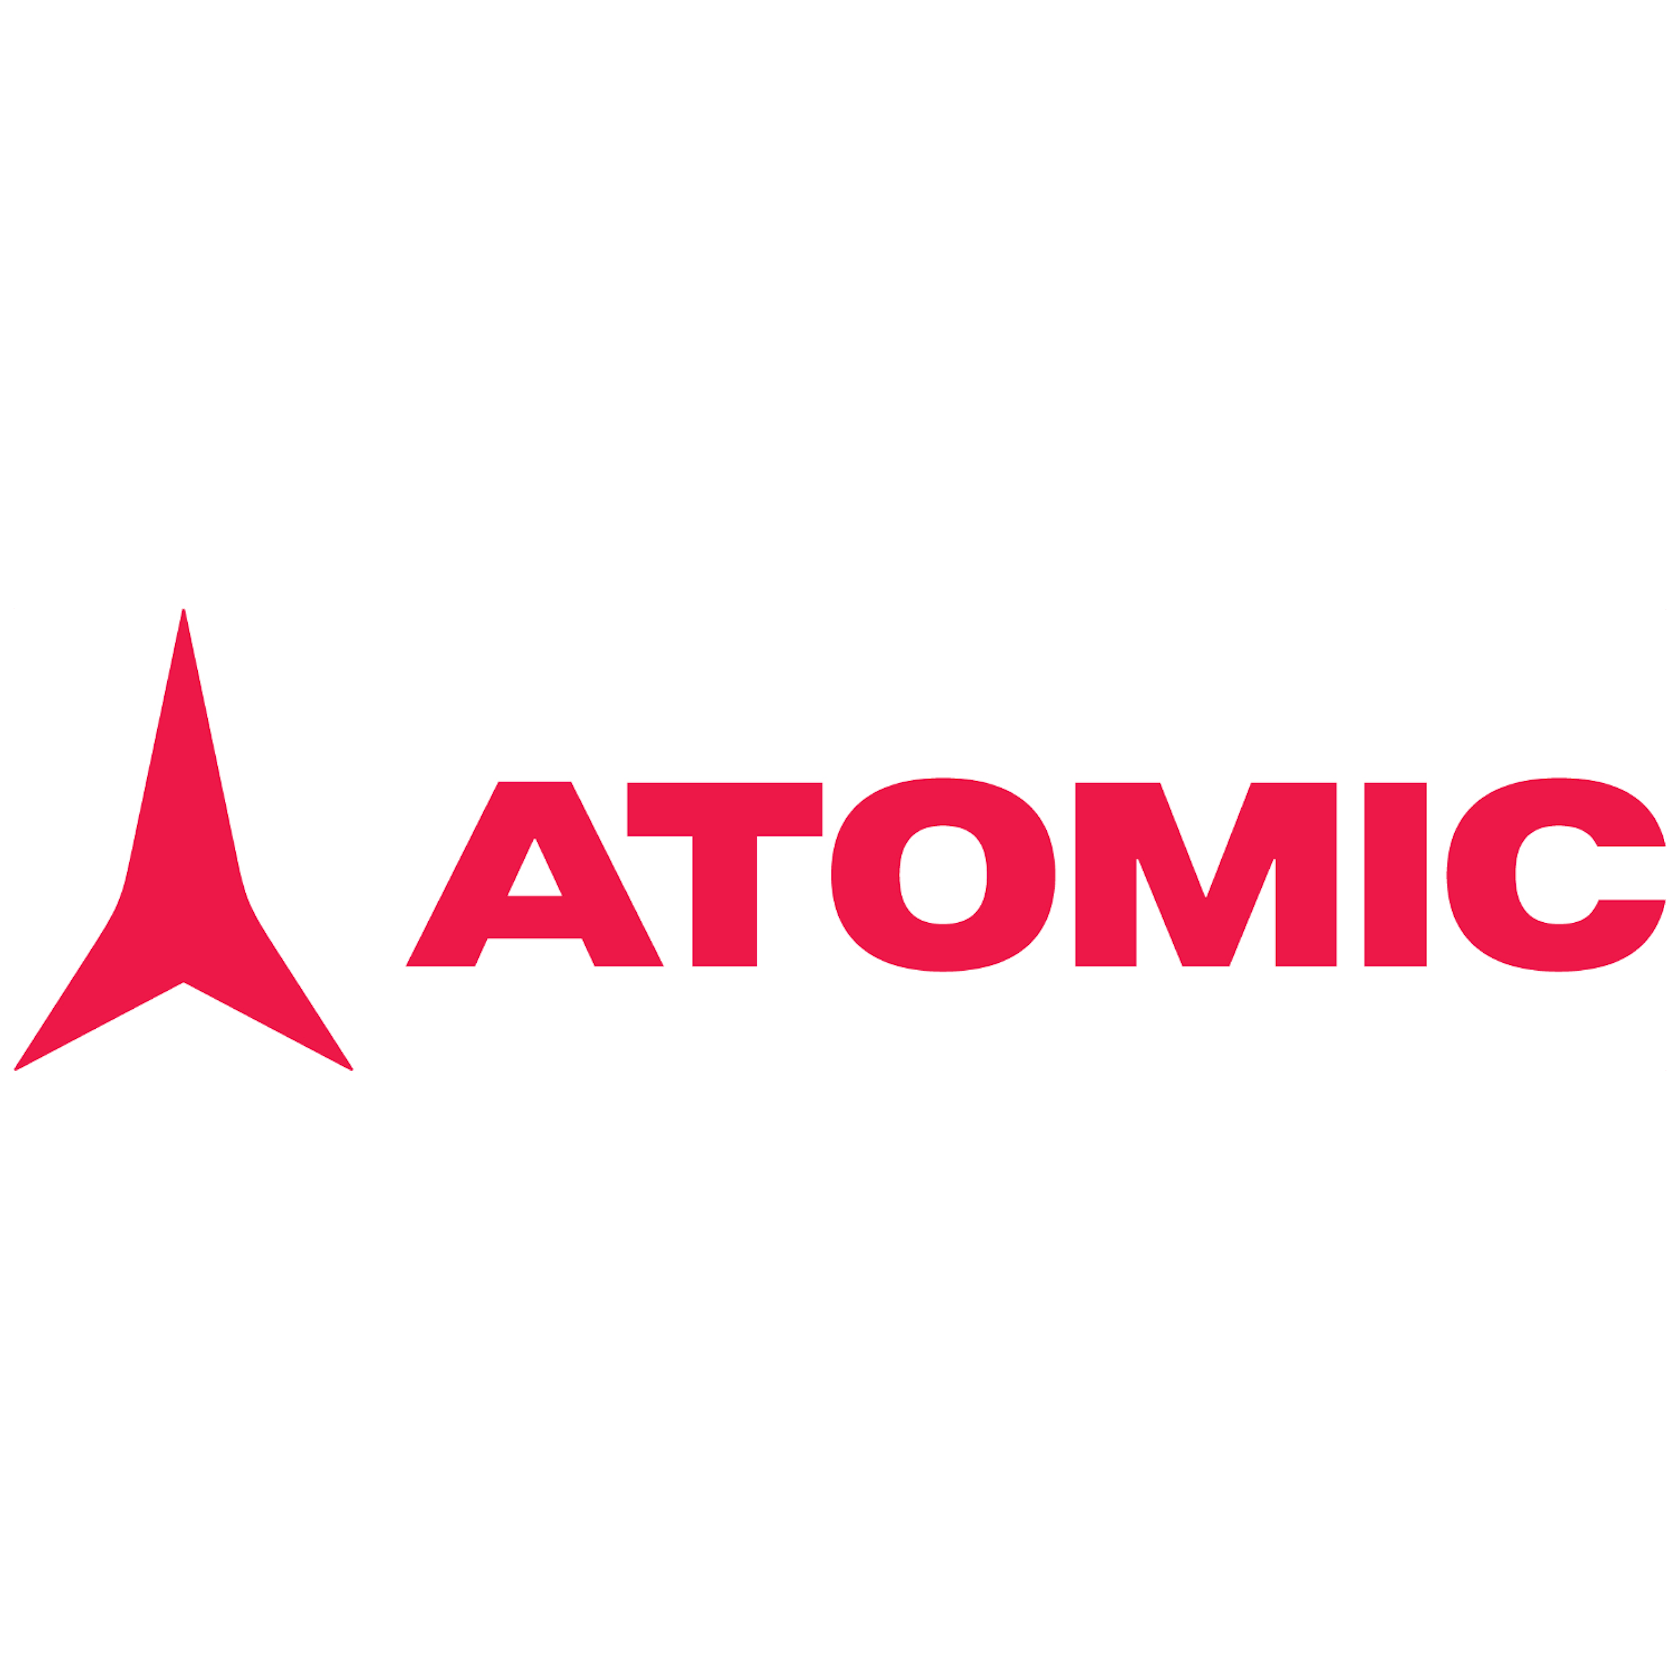 Atomic shop online